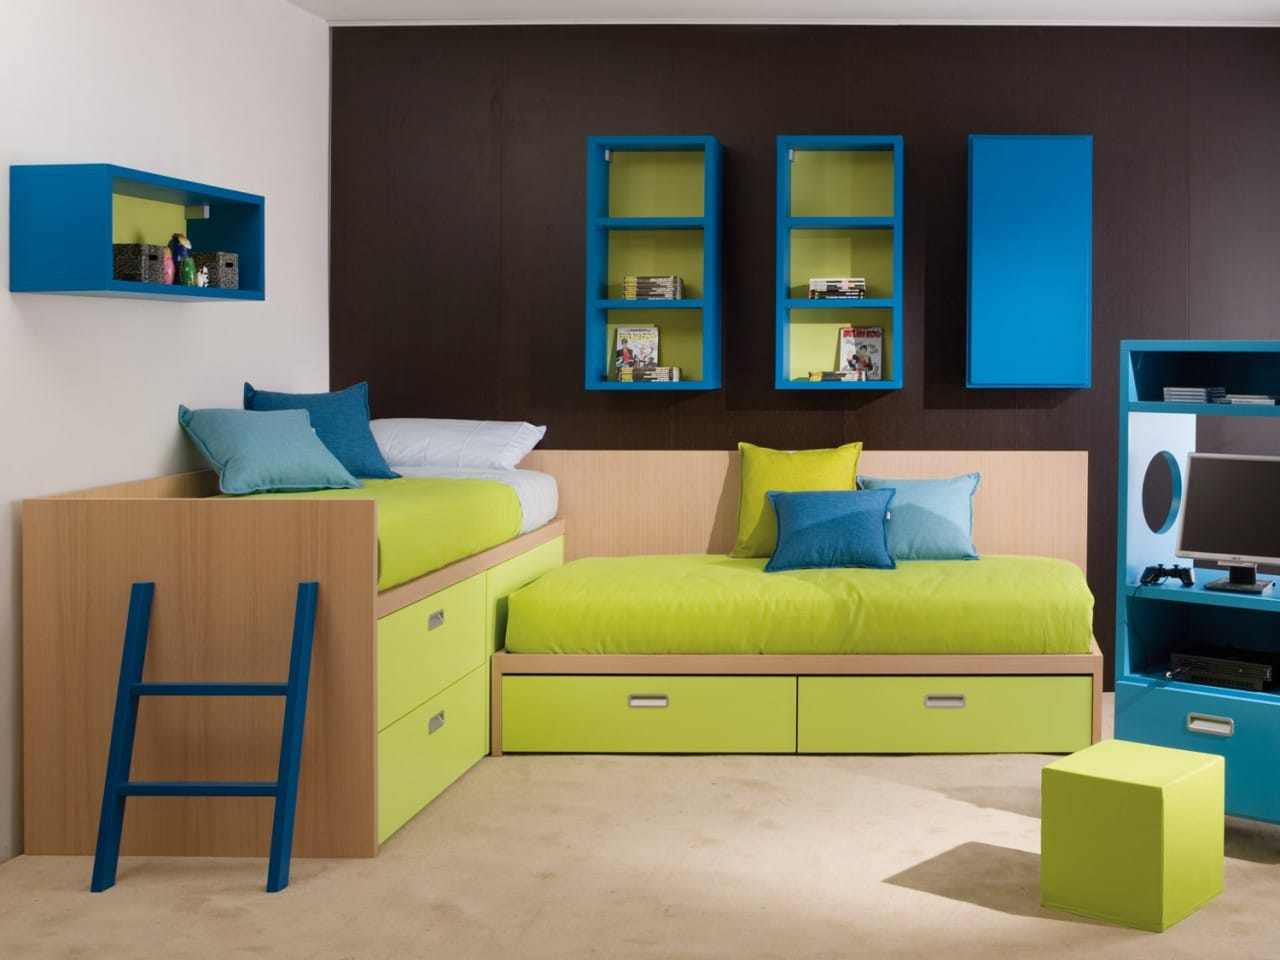 halbhohe kinderbetten und betten mit stauraum. Black Bedroom Furniture Sets. Home Design Ideas